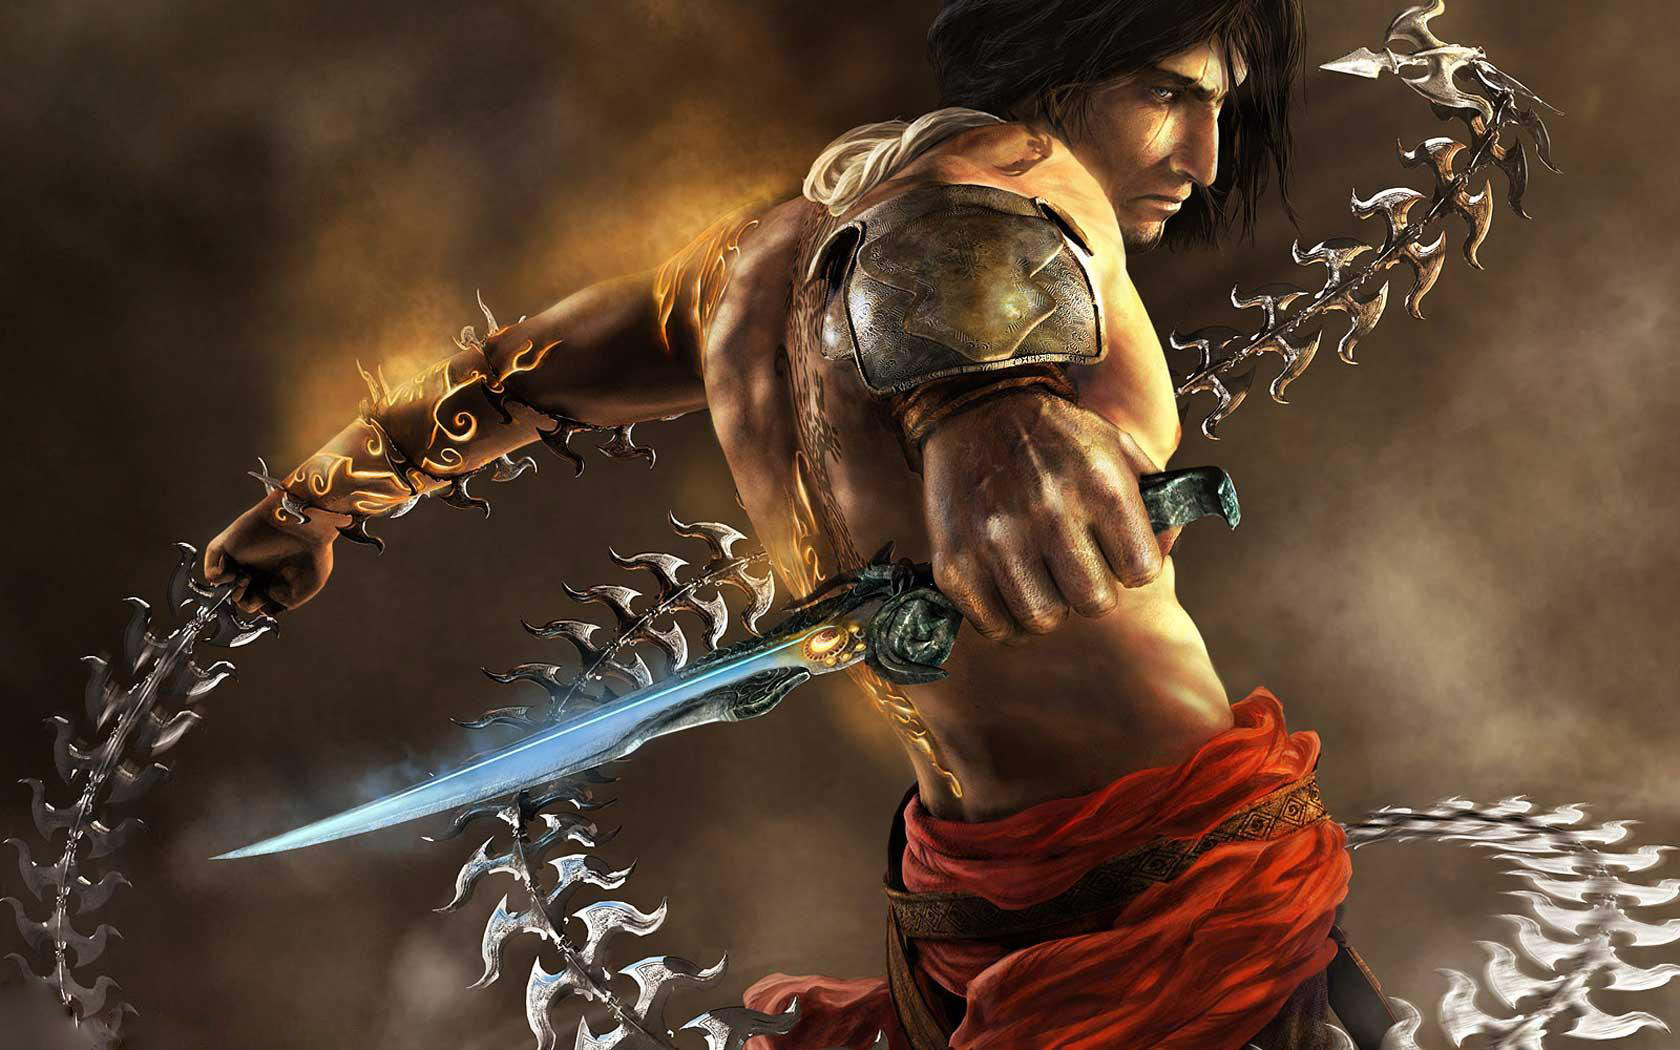 Games Wallpapers Hd 1080p HD 2013 download Hd Pack 3d Hd 1366x768 For 1680x1050